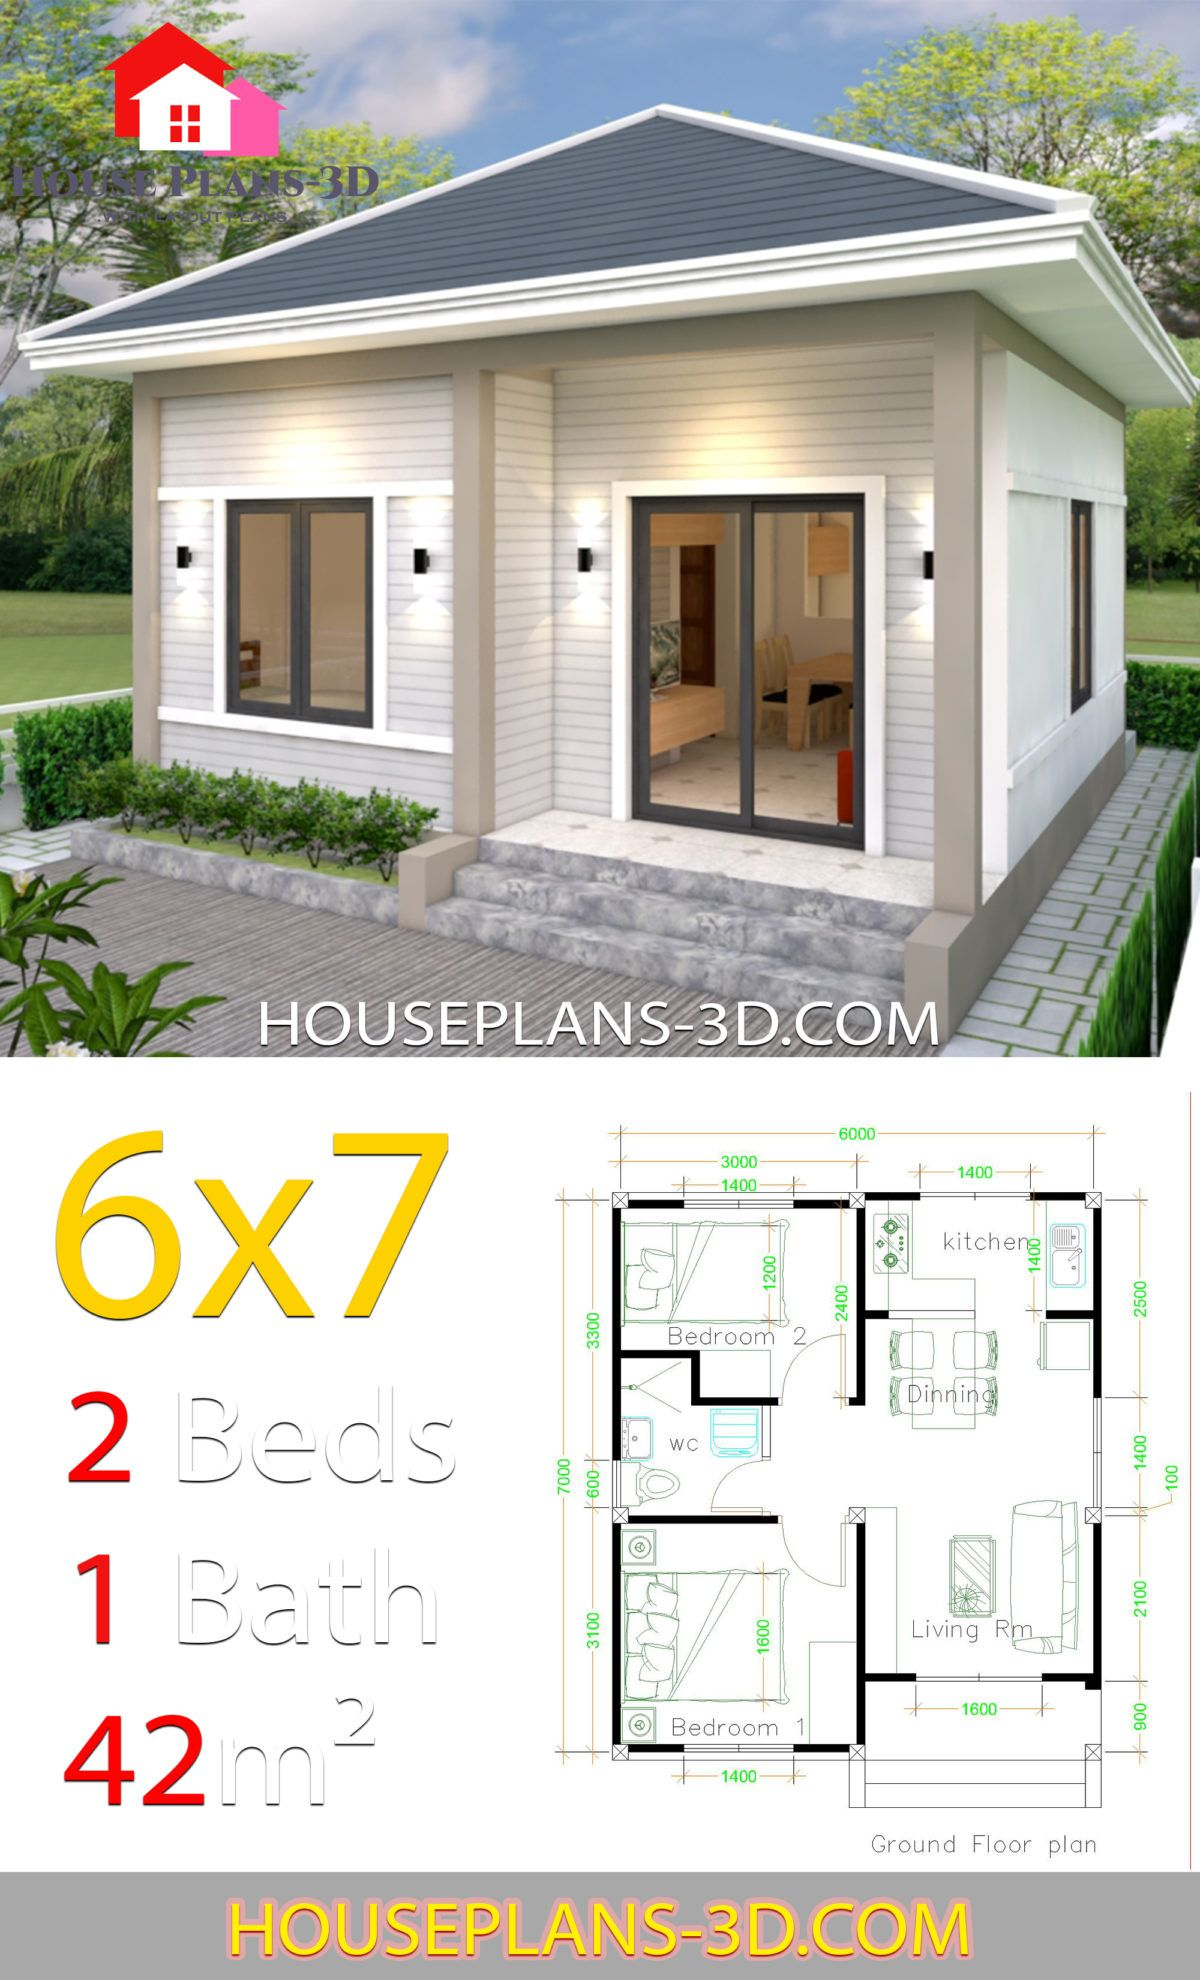 Simple House Plans 6x7 With 2 Bedrooms Hip Roof House Plans 3d In 2020 Small House Layout Simple House Design House Plans